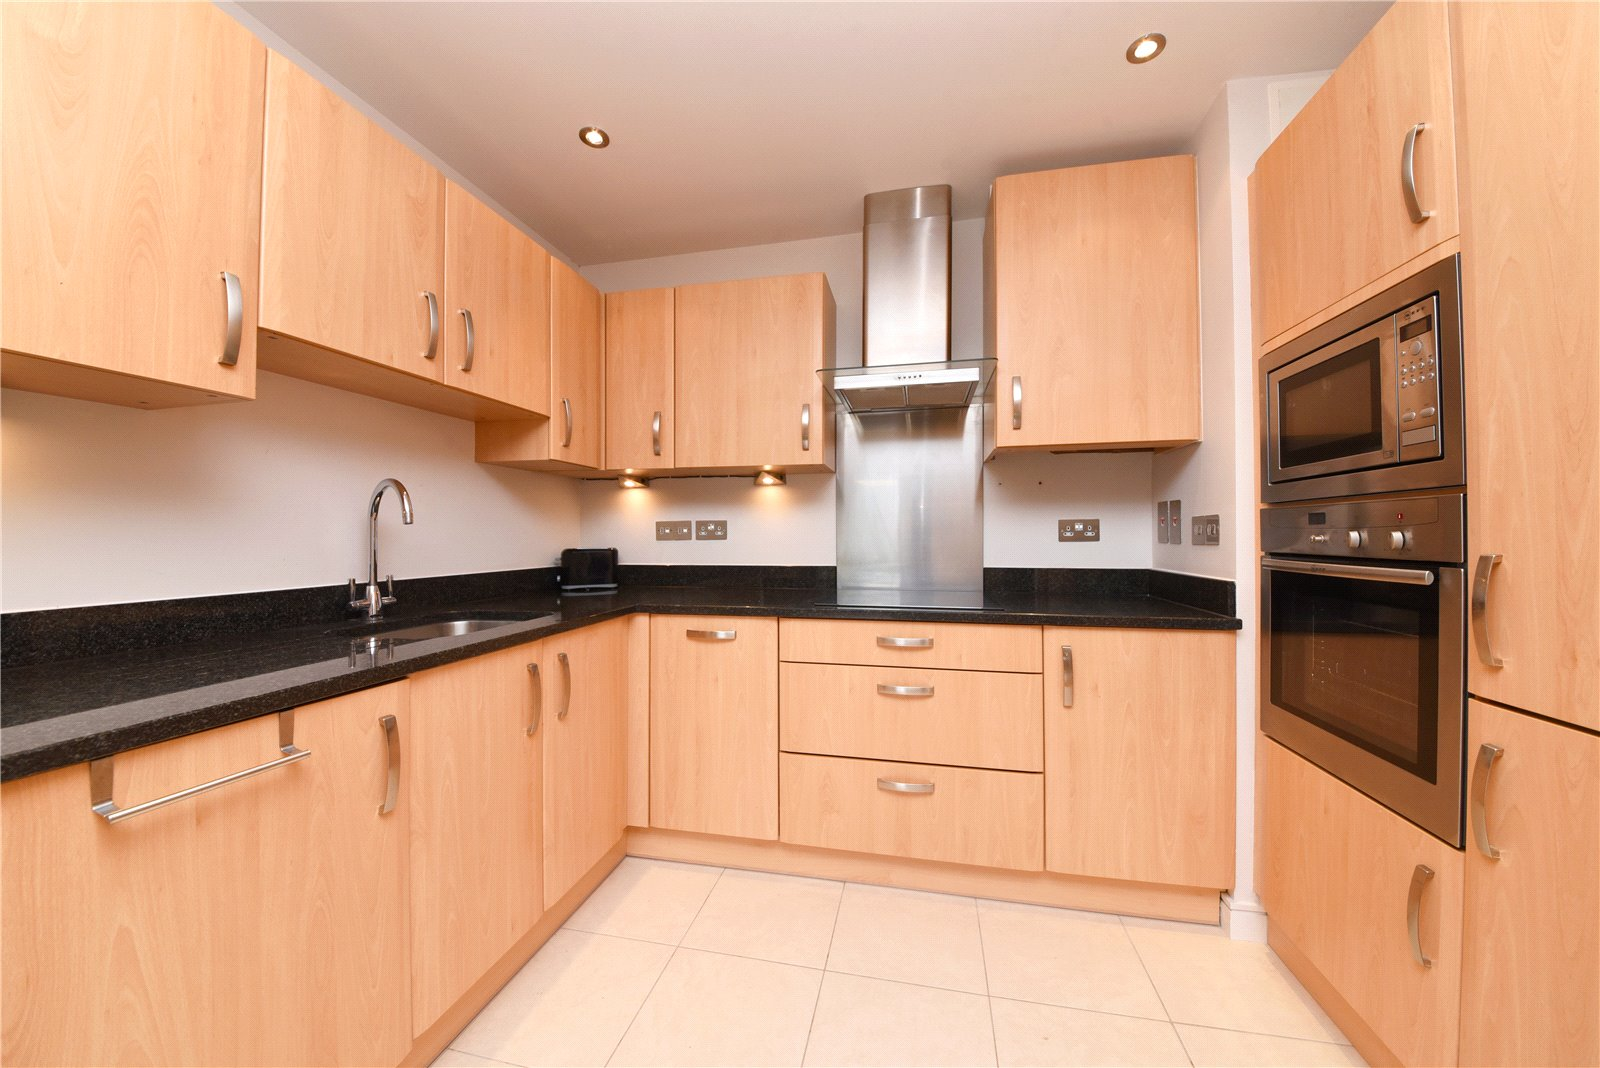 2 bed apartment for sale in Mill Hill East, NW7 1ND  - Property Image 9